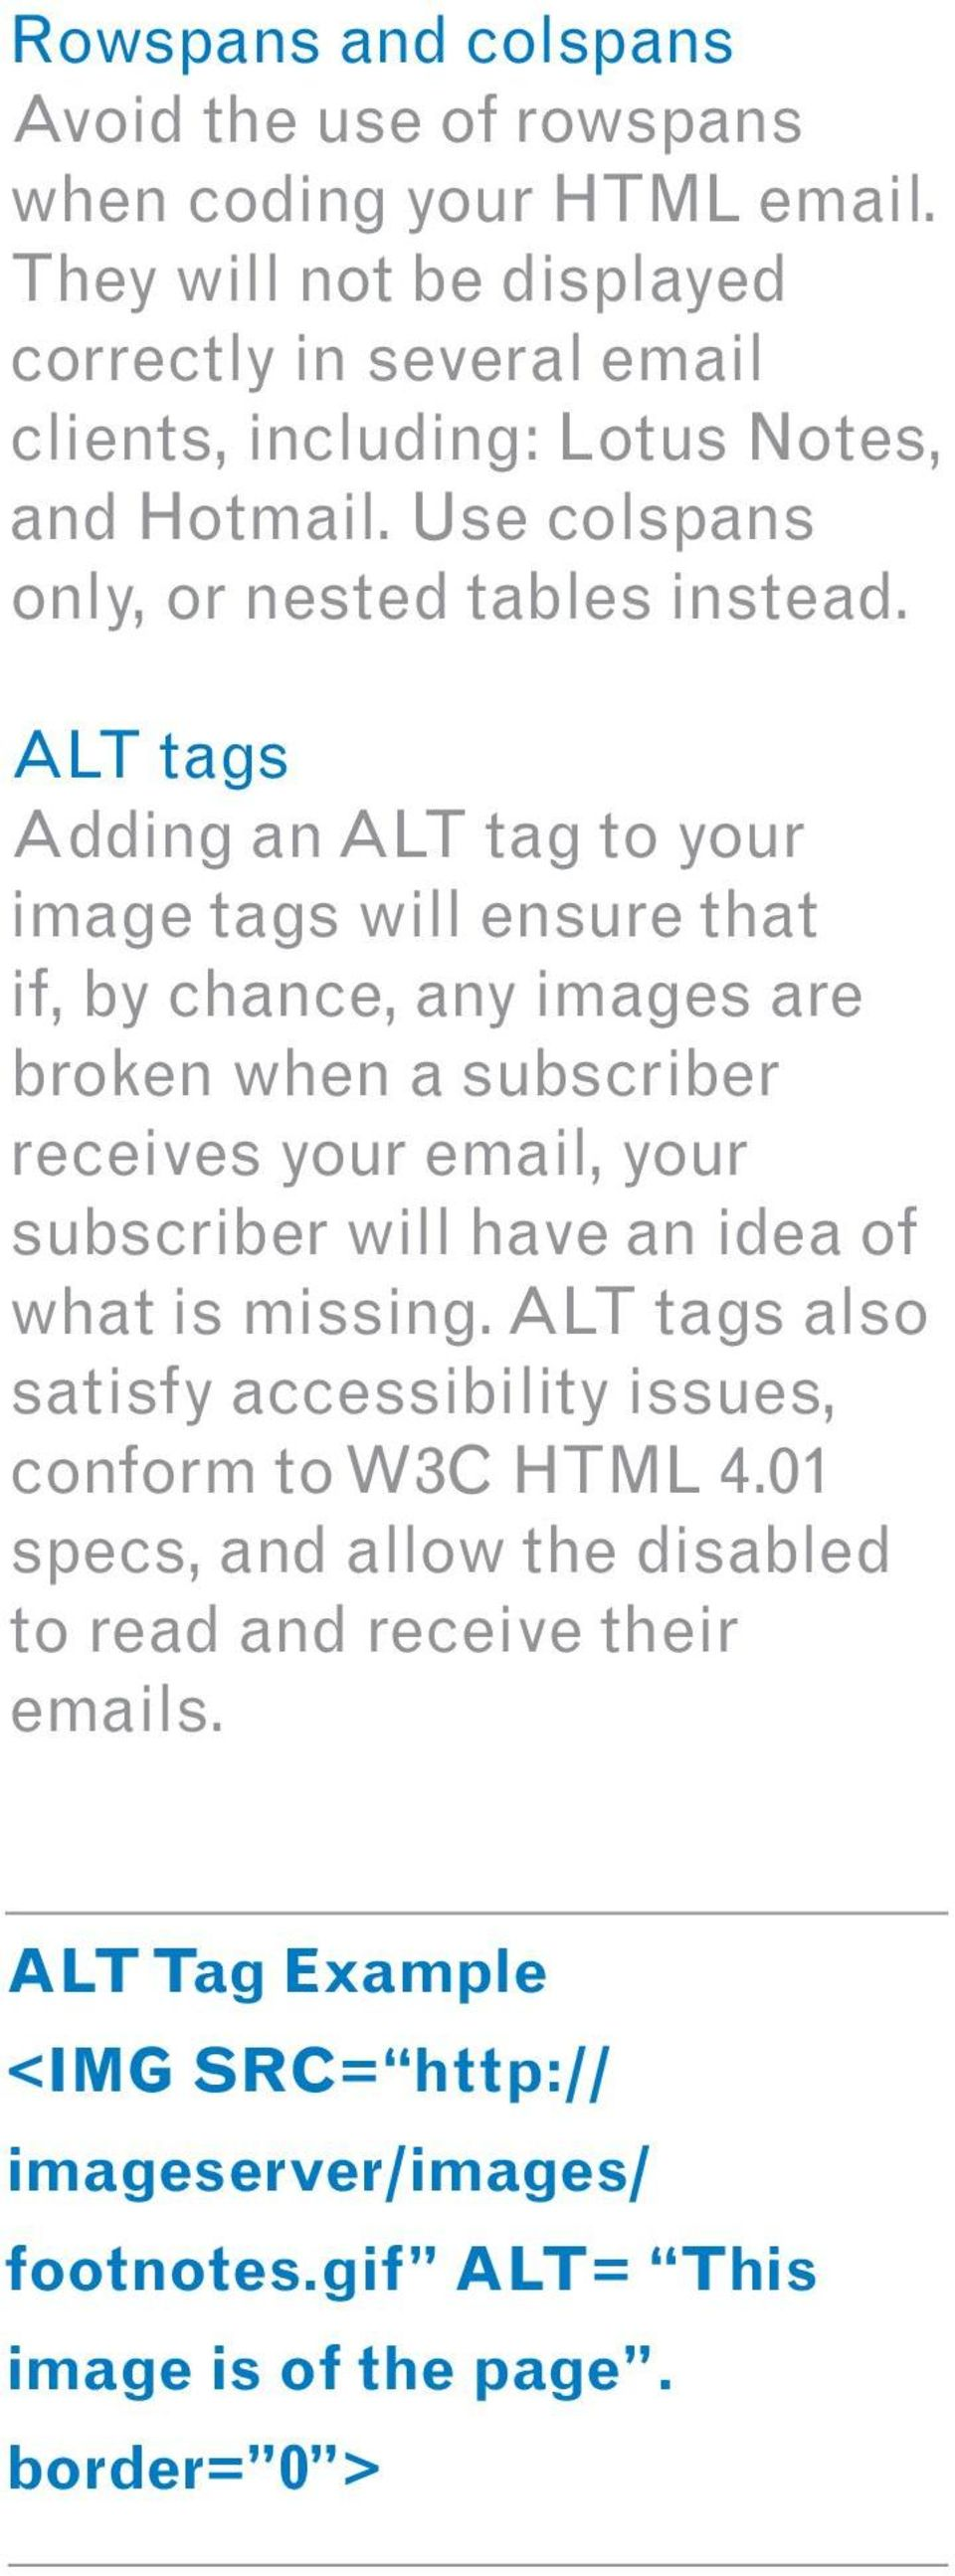 ALT tags Adding an ALT tag to your image tags will ensure that if, by chance, any images are broken when a subscriber receives your email, your subscriber will have